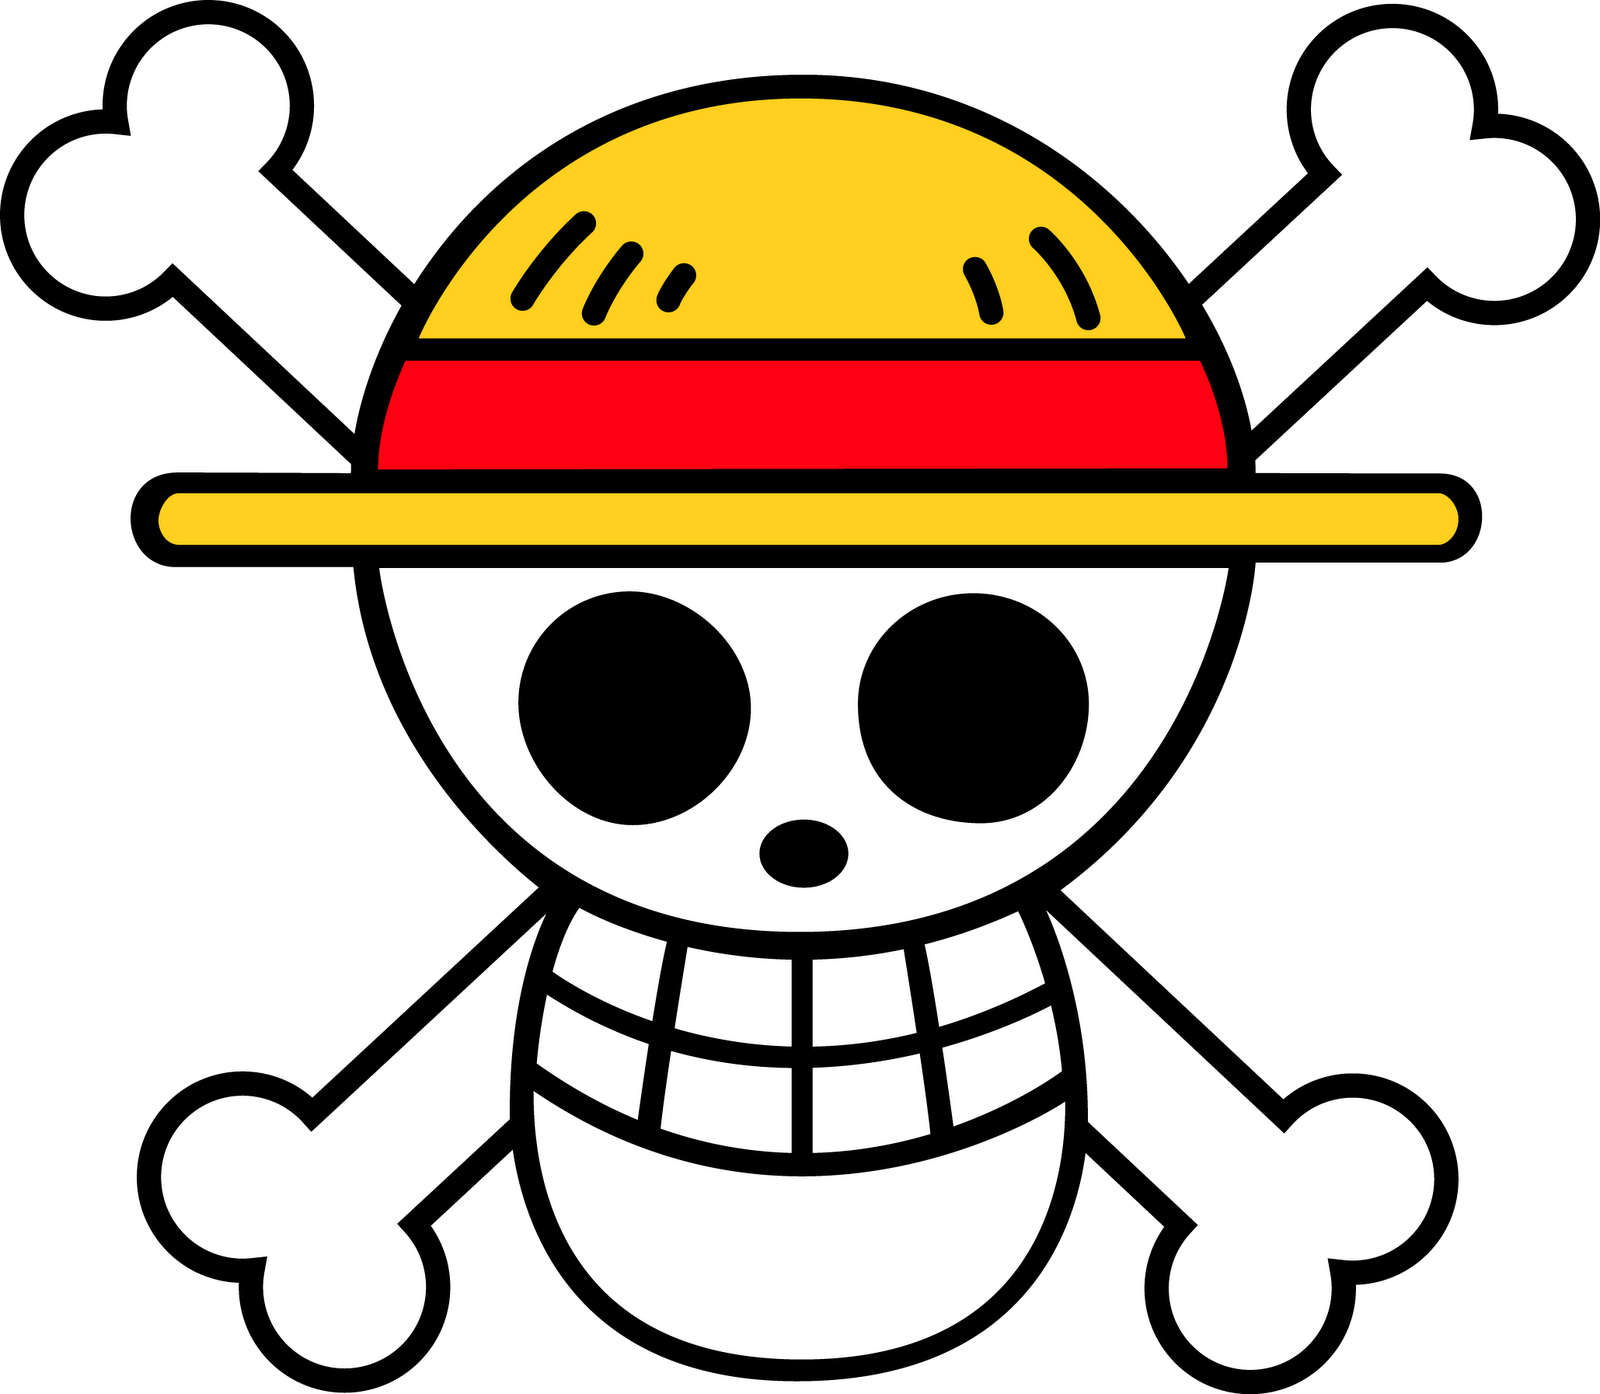 This logo is from the show one piece and i like it because it really captures the fun and - One piece logo zoro ...